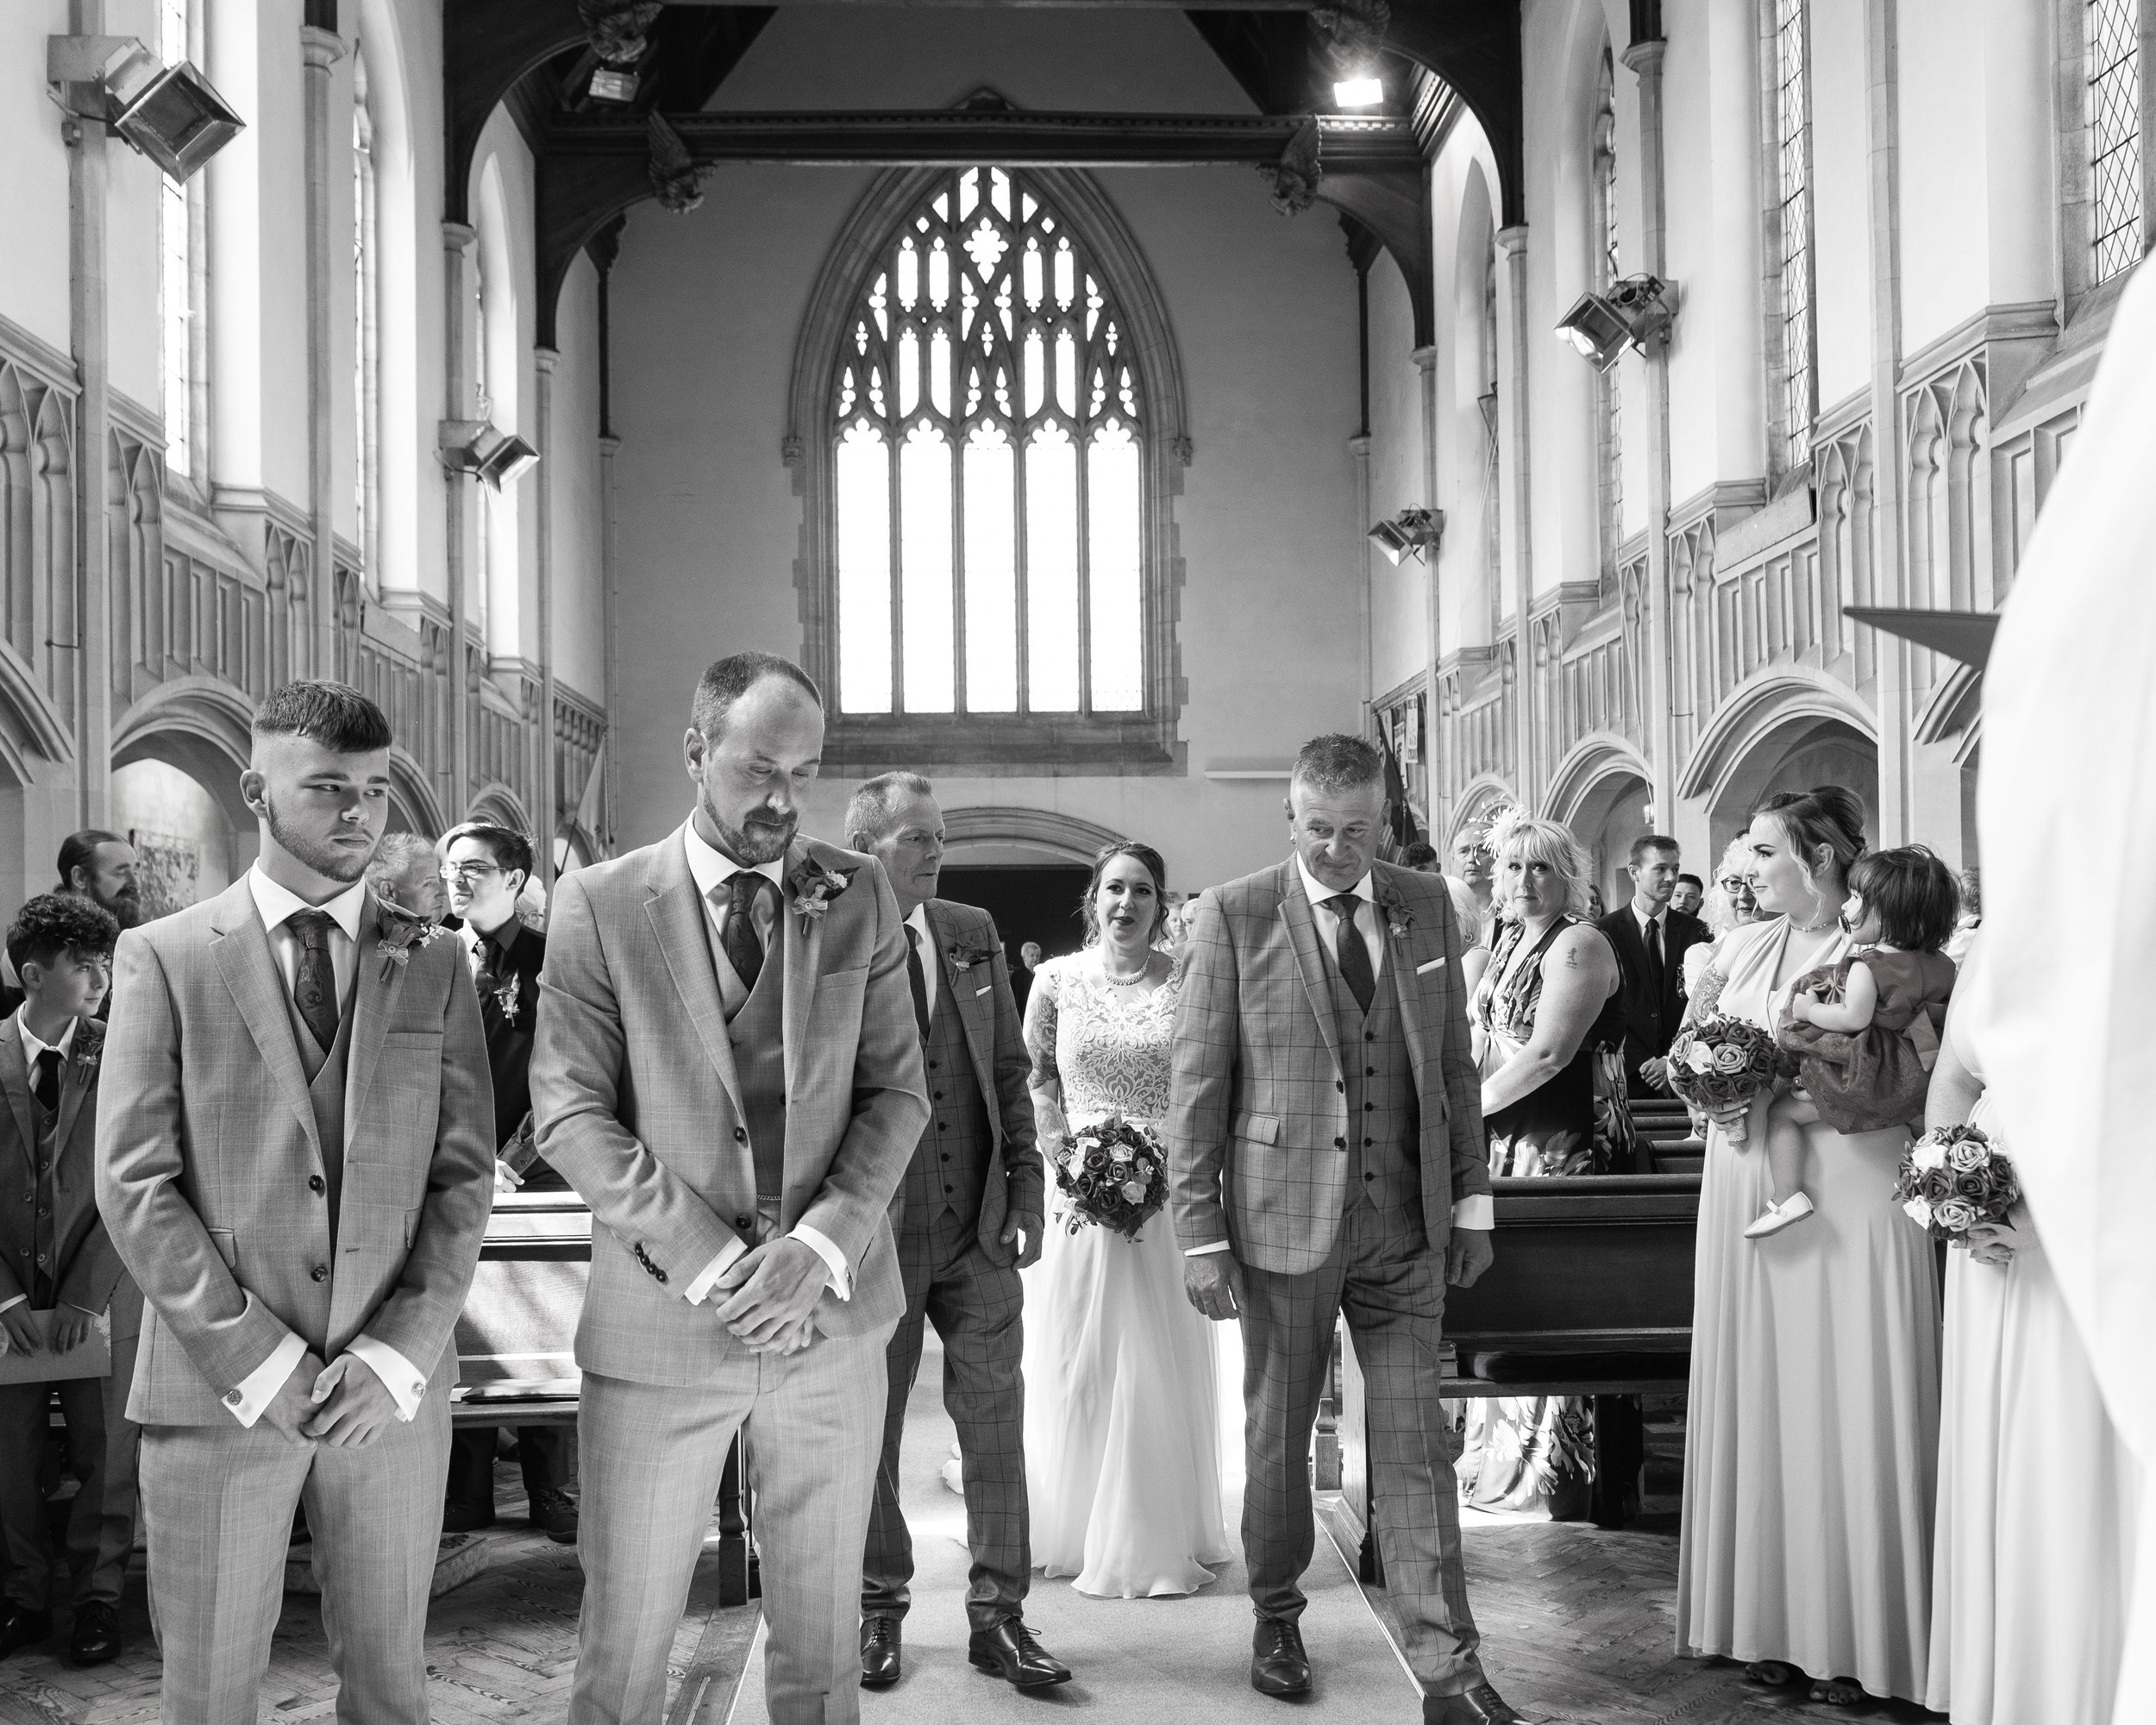 Suffolk-Wedding-Photography-Ipswich-Essex-Norfolk-photographer-7.jpg